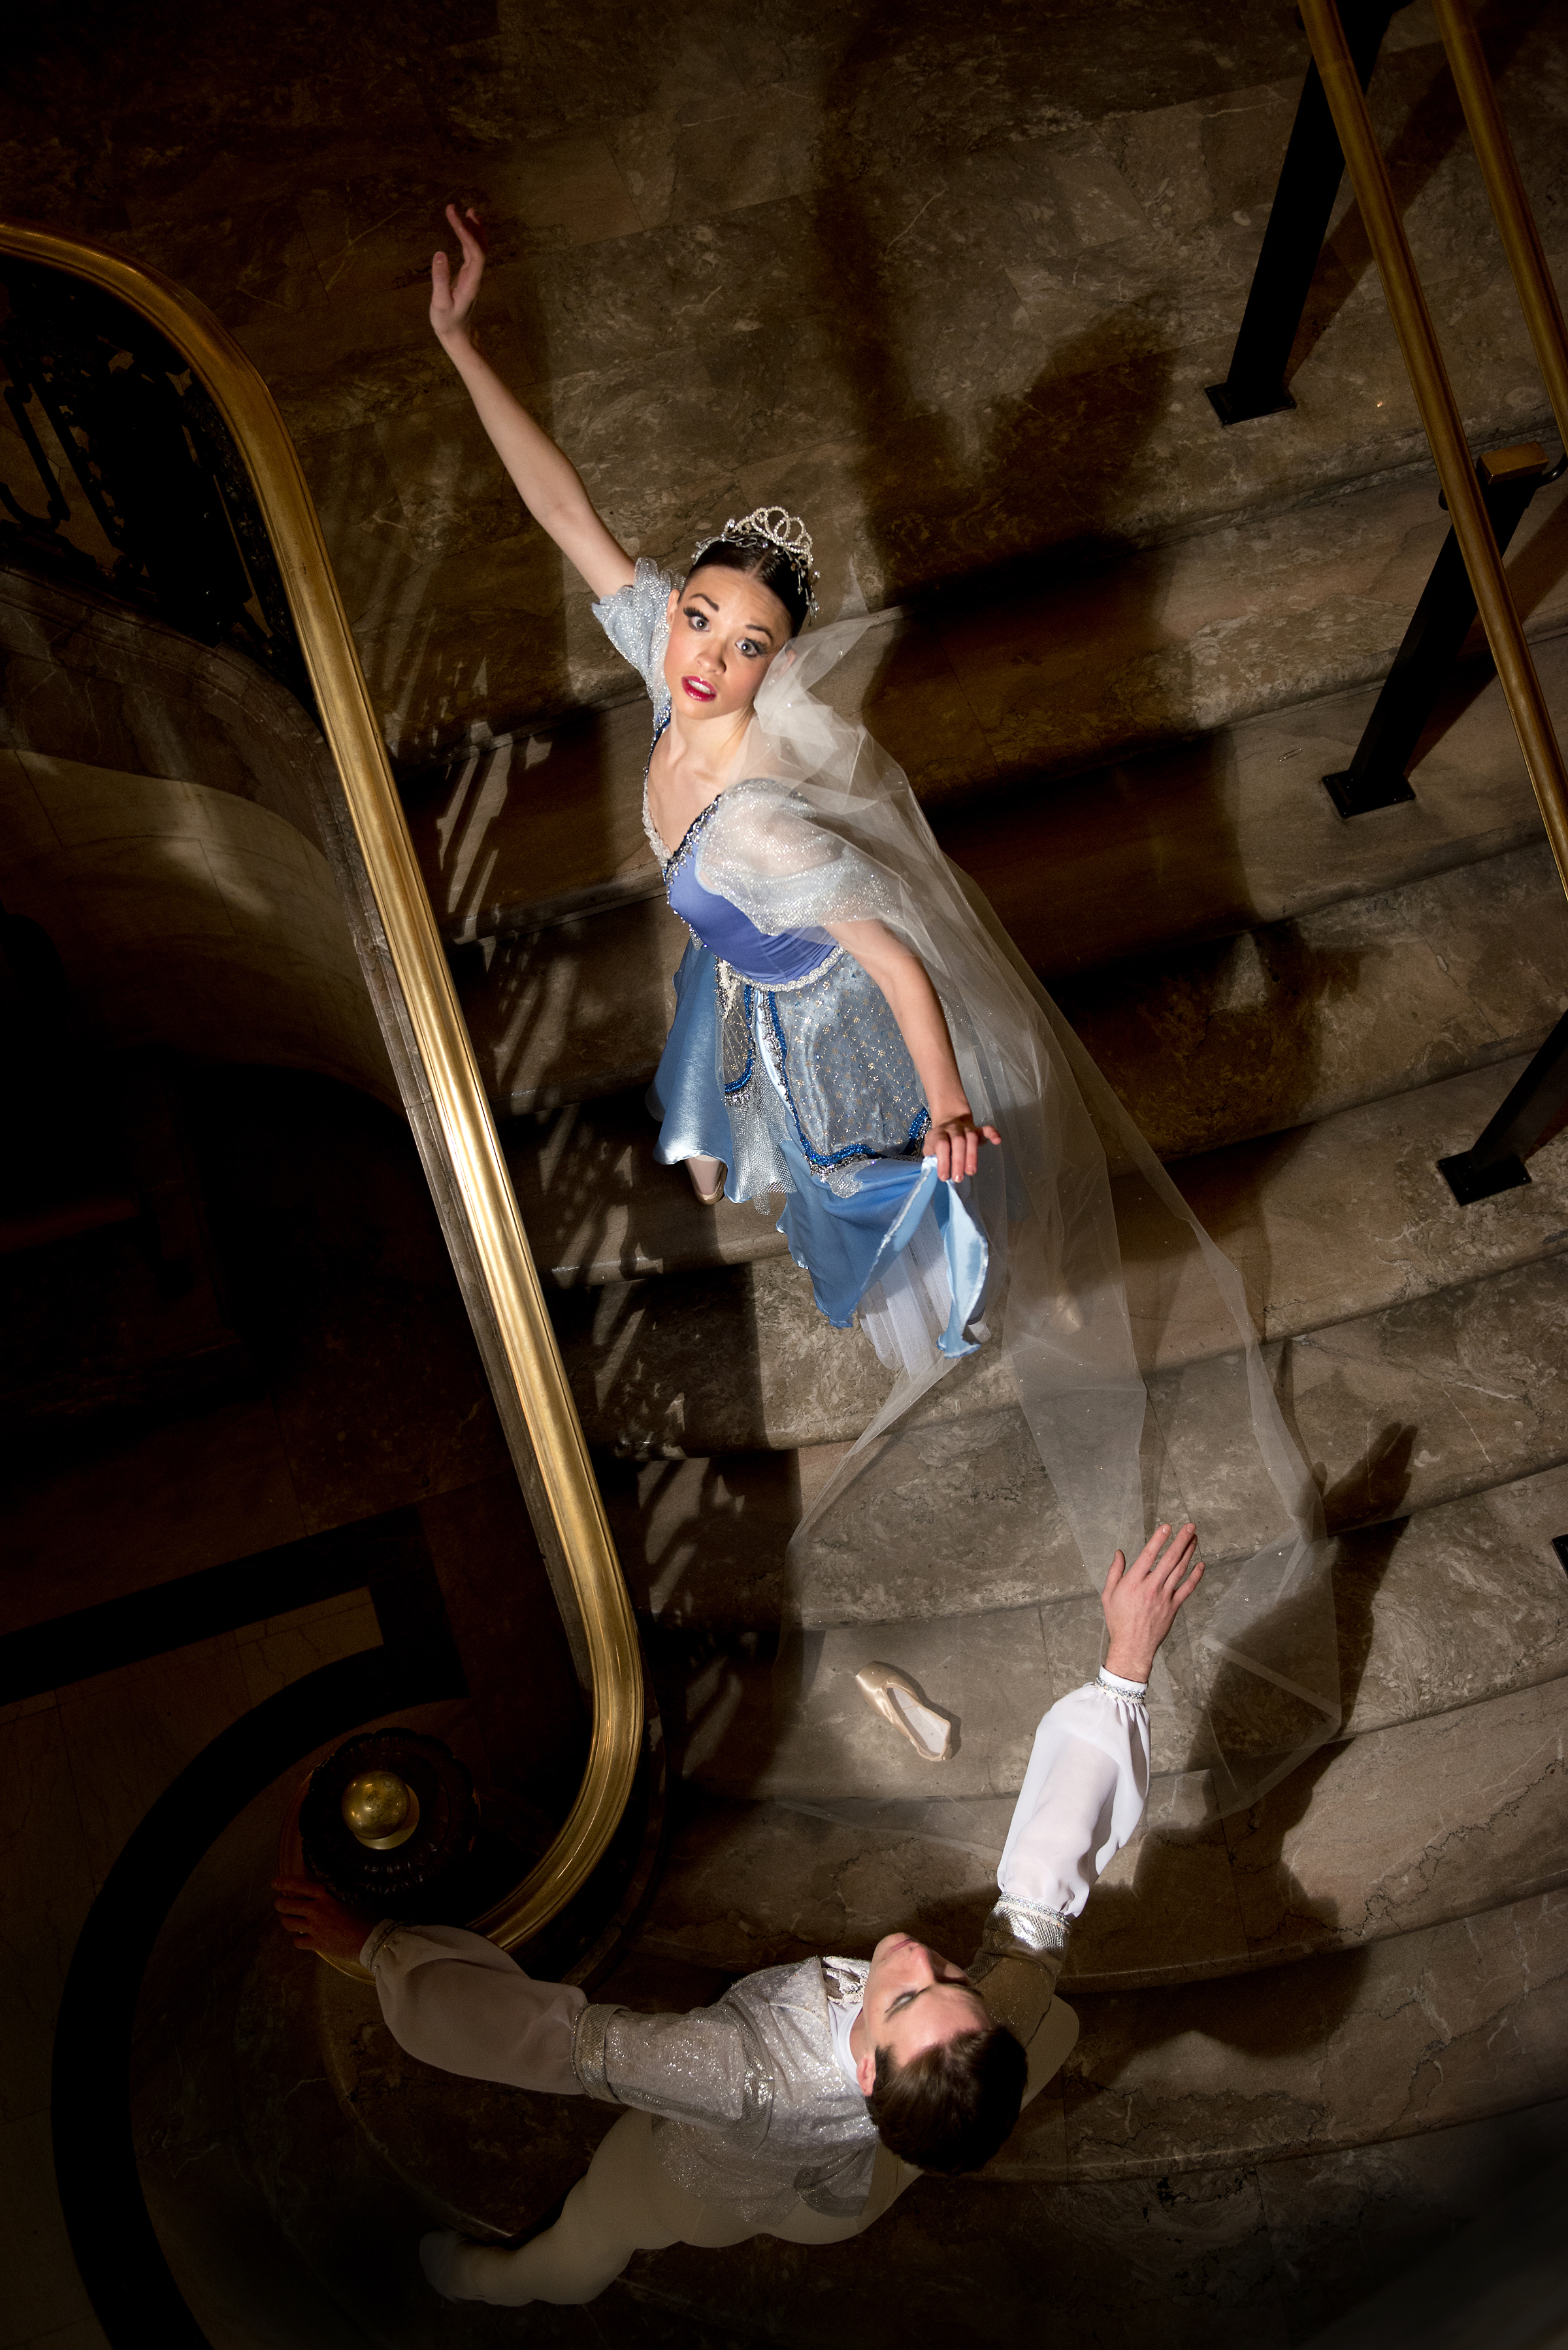 First State Ballet Theatre will present the premiere of 'Cinderella' at the Grand Opera House on April 12 and April 13. Photo by Tisa Della-Volpe